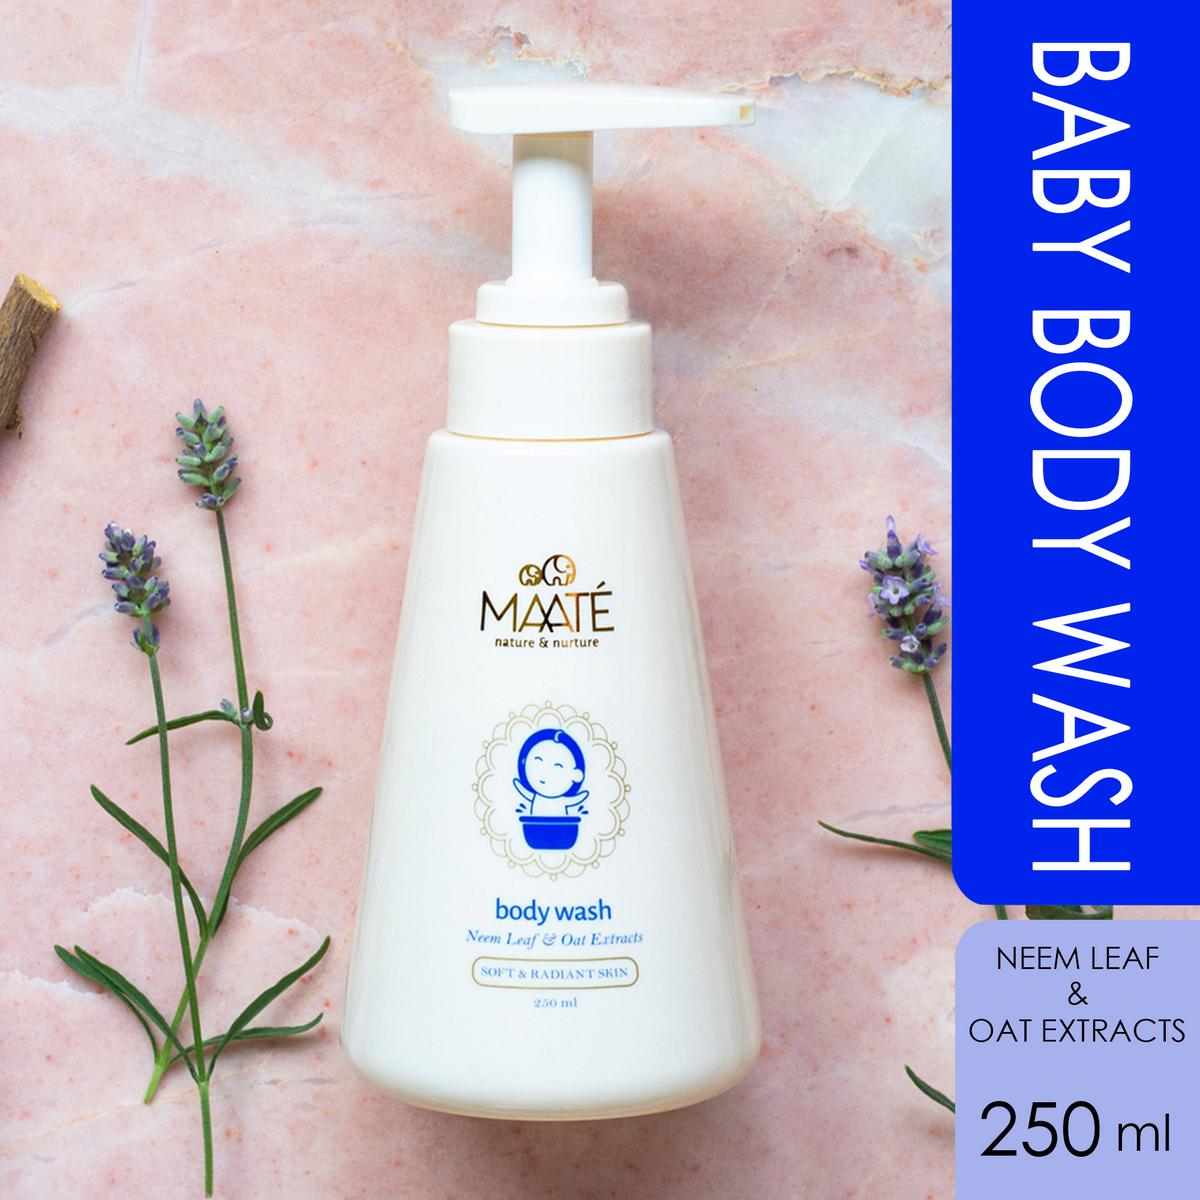 MAATÉ Baby Body Wash-Contains Oat-Neem and Licorice Extracts-Moisturising and Soap Free-250 ML